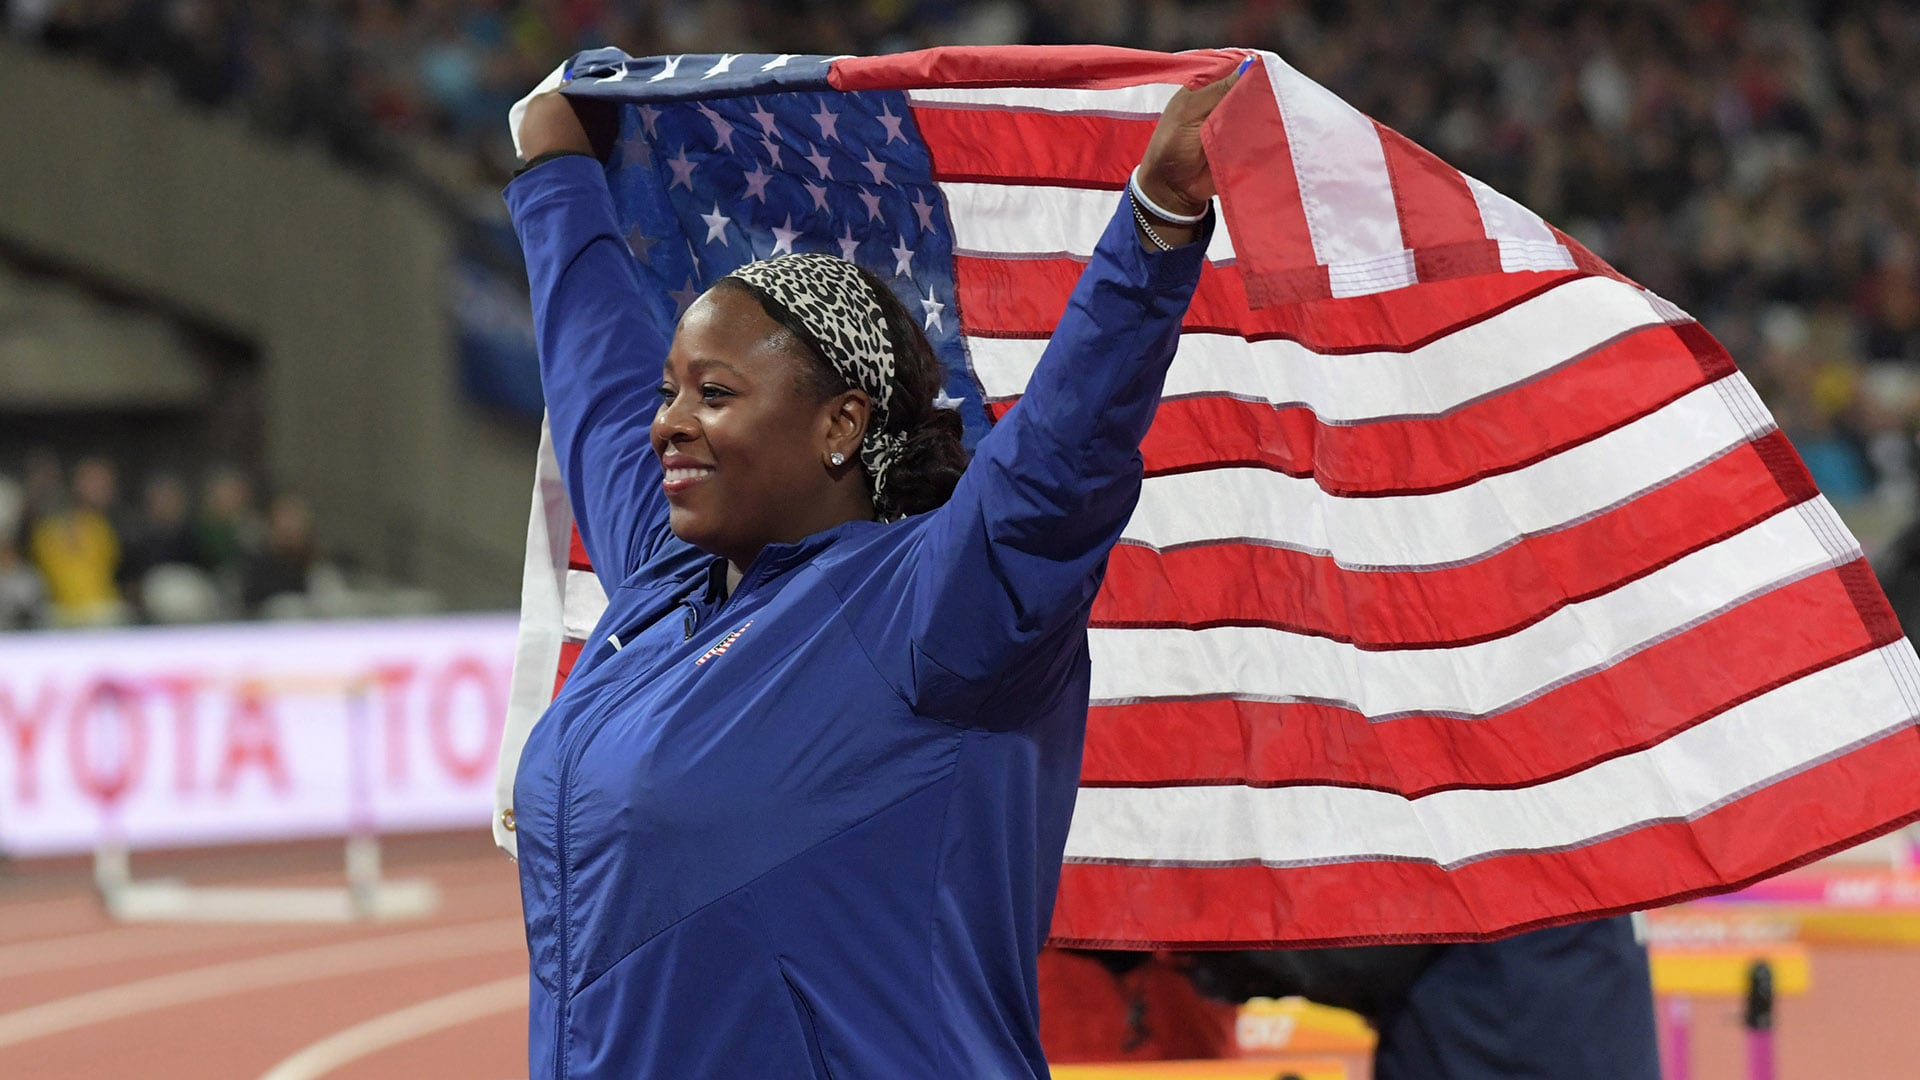 Aug 9, 2017; London, United Kingdom; Michelle Carter (USA) poses with United States flag after placing third in the womens shot put during the IAAF World Championships in Athletics at London Stadium at Queen Elizabeth Park. Mandatory Credit: Kirby Lee-USA TODAY Sports